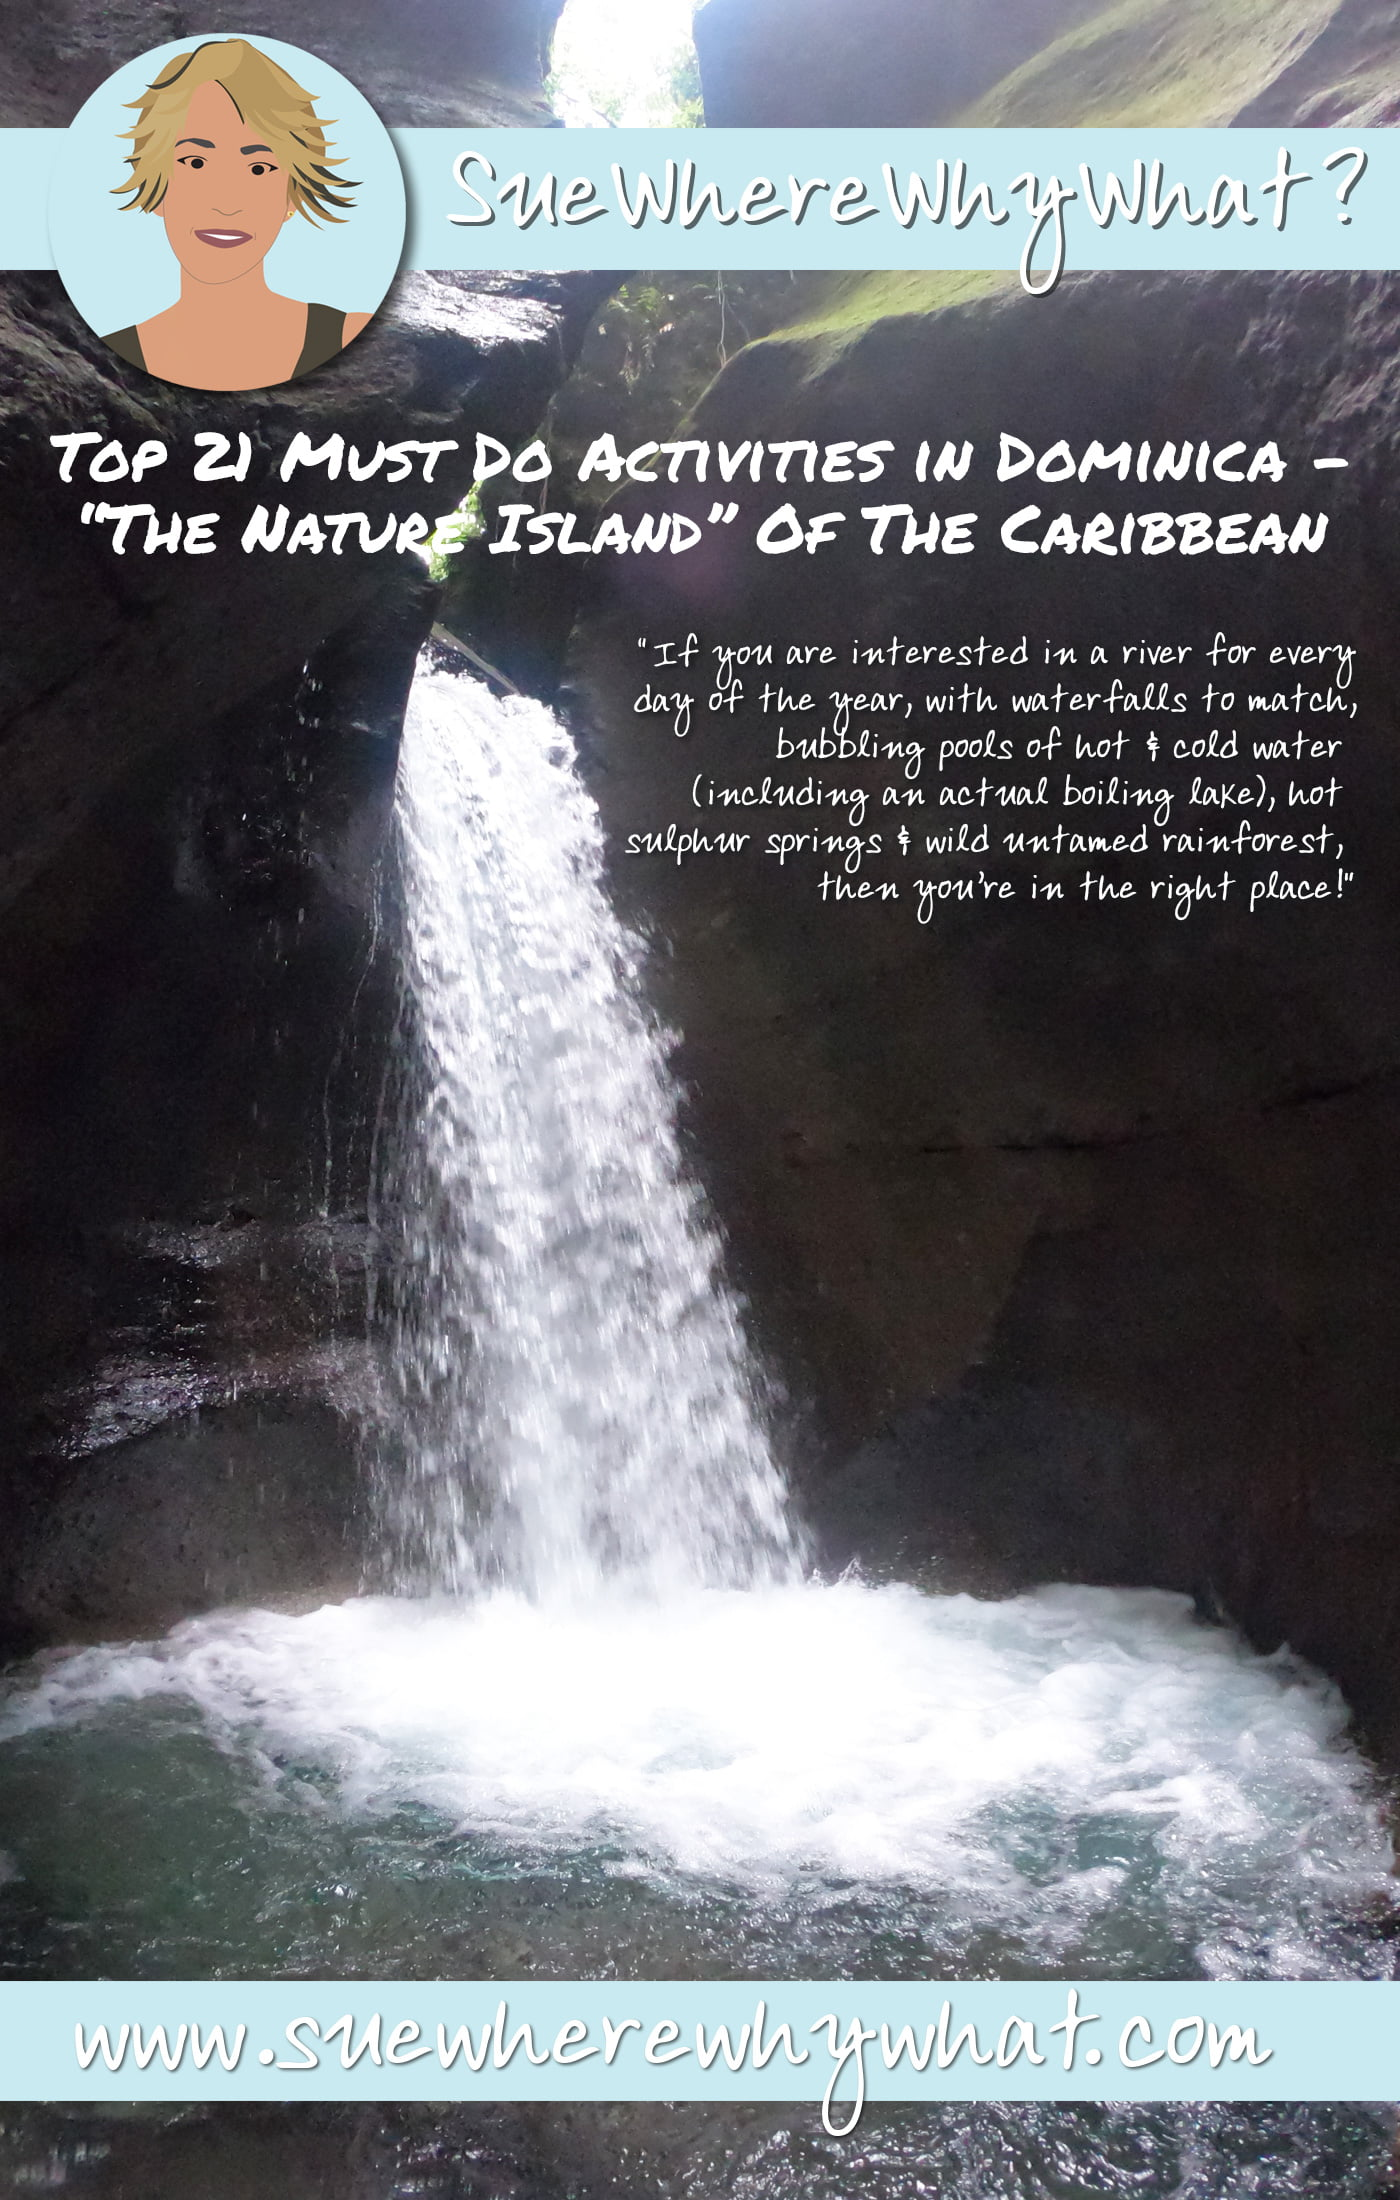 """All the best activities to do on the Caribbean Island of Dominica. Explore the 365 rivers, waterfalls, active volcanoes, boiling lakes, tropical rainforests & discover all that the """"Nature Island"""" has to offer. Includes advise on what to see & do, the best hiking as well as how to get around this paradise island. Based on my visit 18 months after Hurricane Maria. This island is back in business & needs our tourist support."""